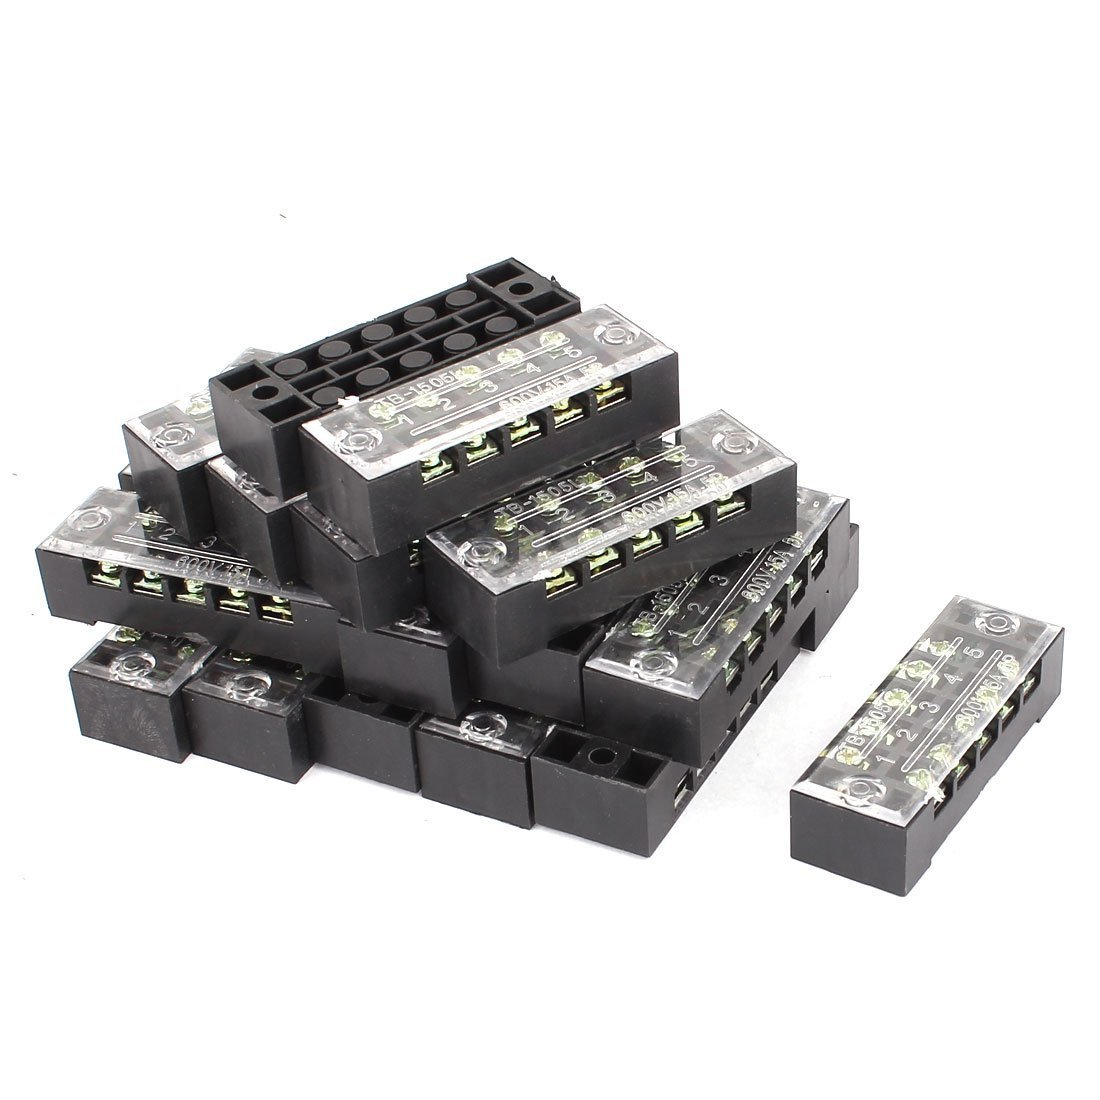 uxcell 20 Pcs 600V 15A 5P Screw Barrier Terminal Block Cable Connector Strip